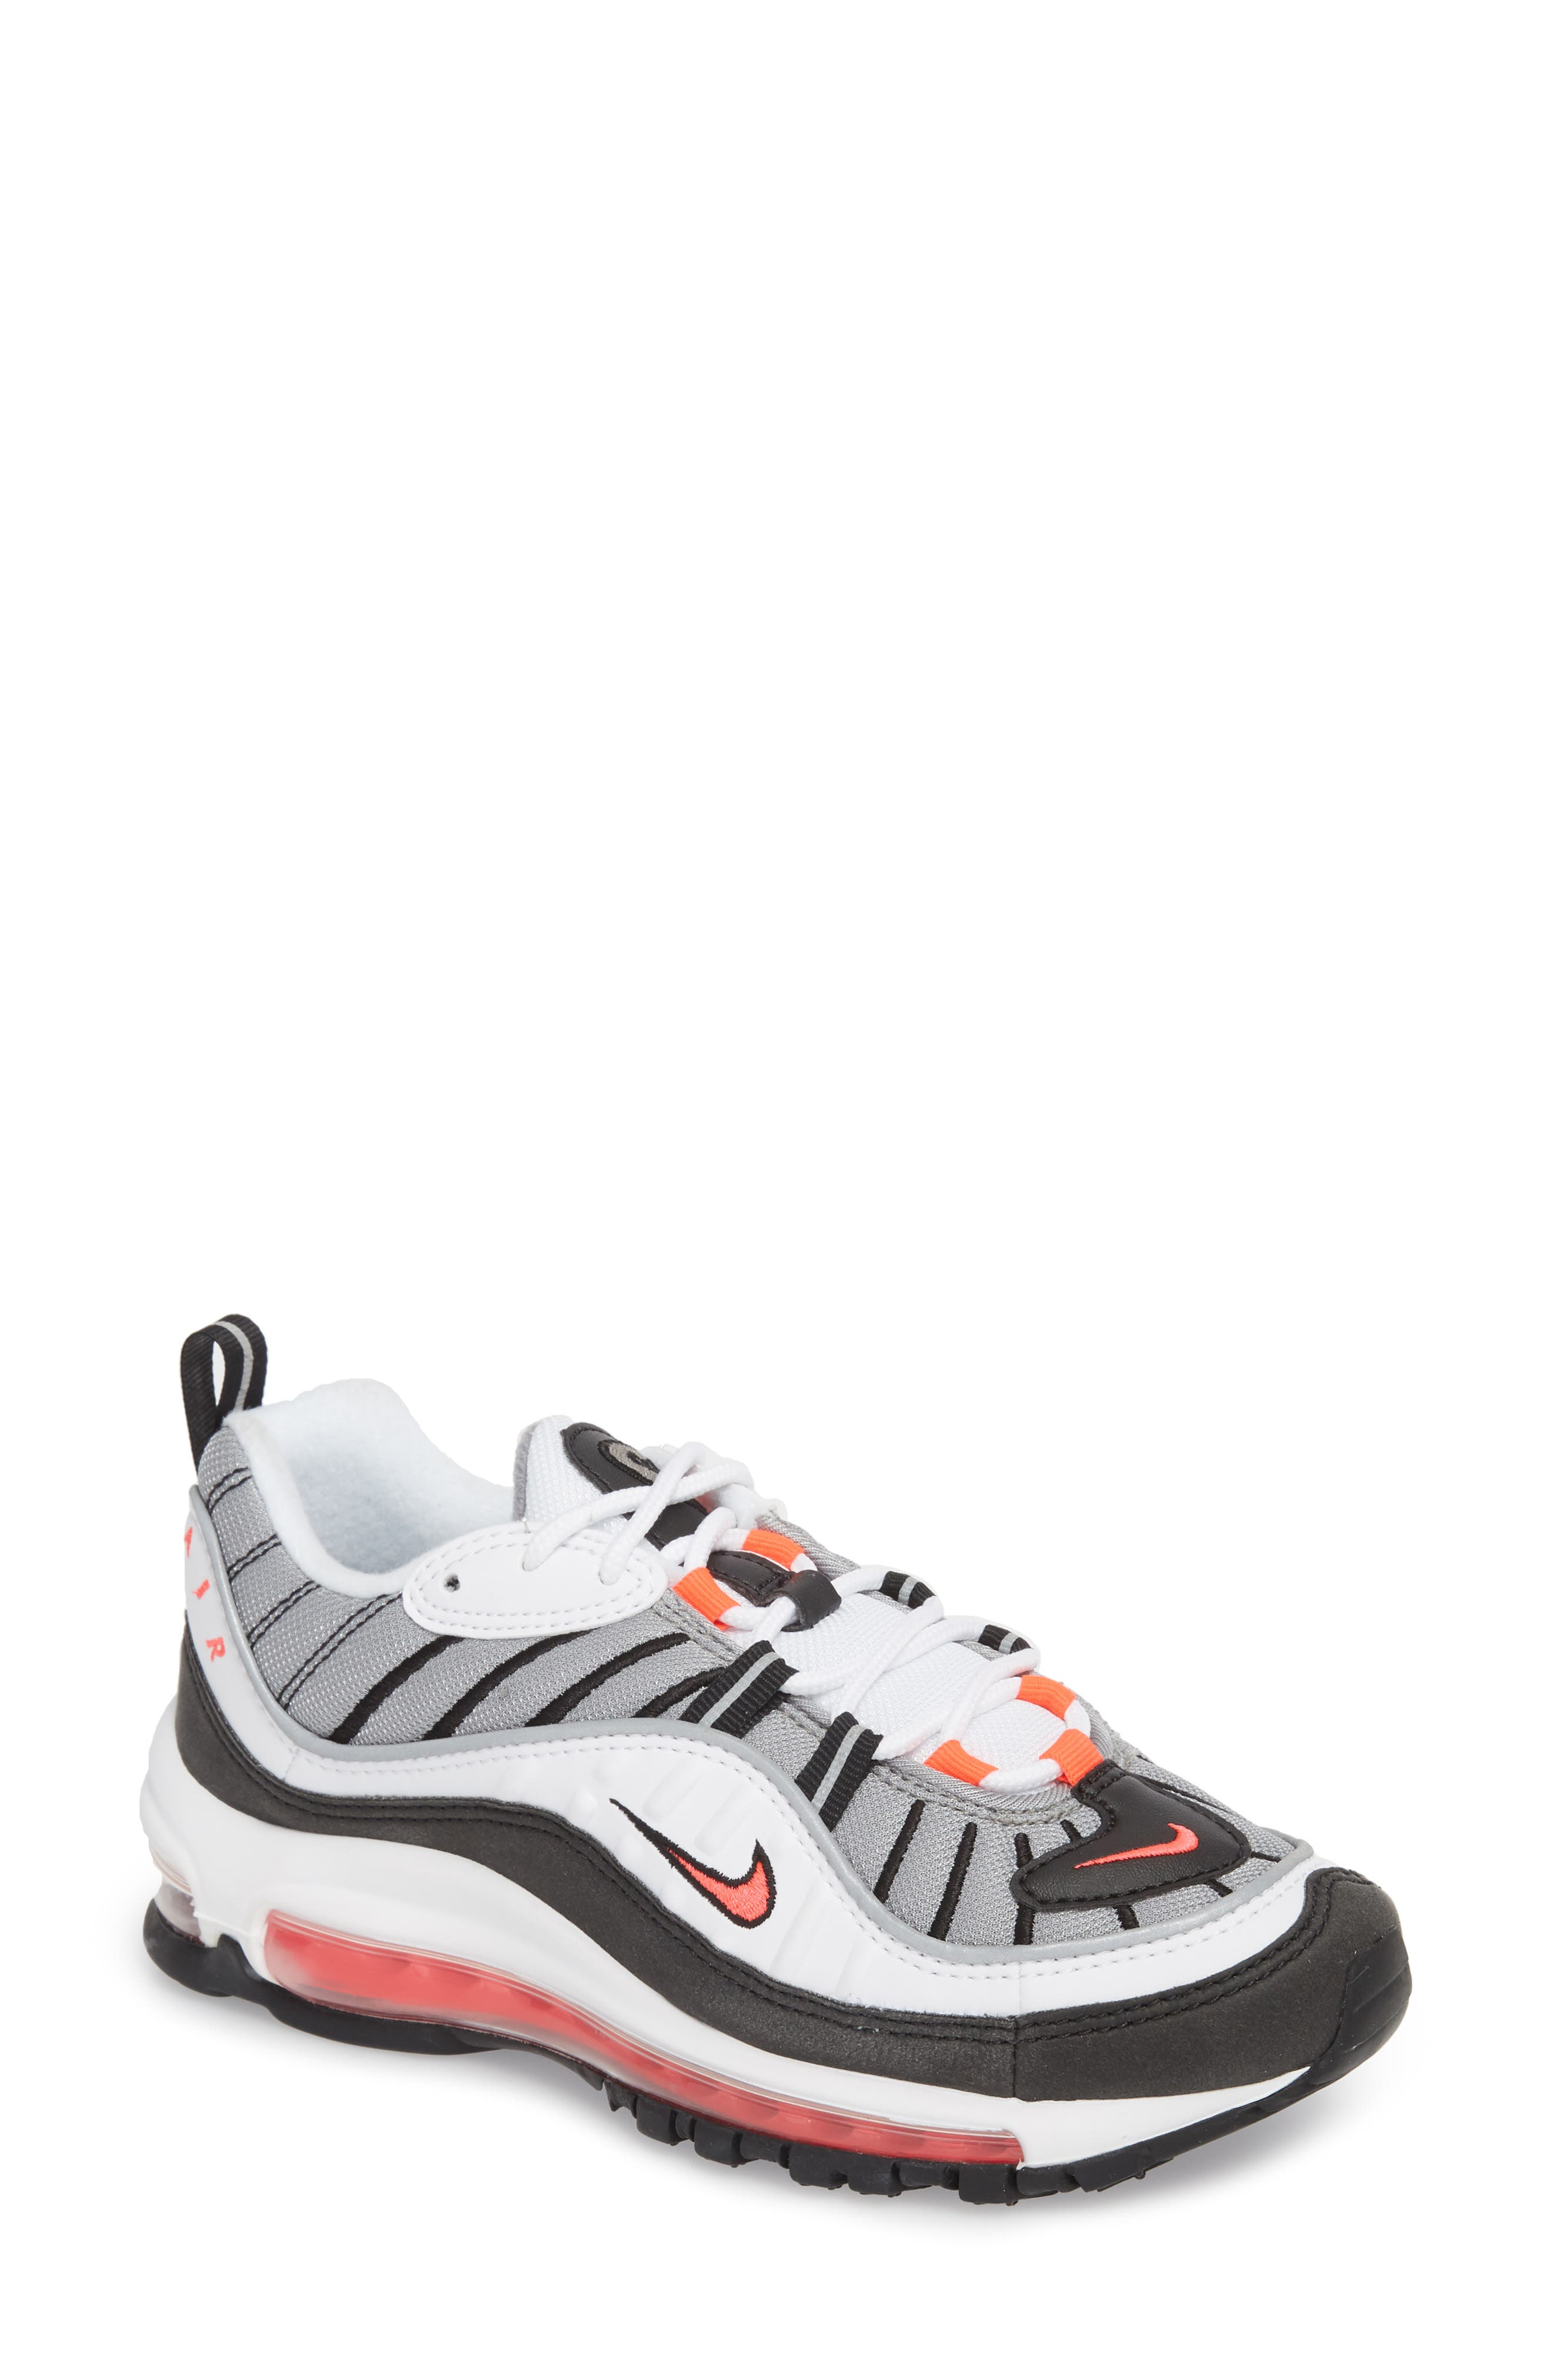 Air Max 98 Running Shoe,                         Main,                         color, WHITE/ RED/ DUST/ REFLECT